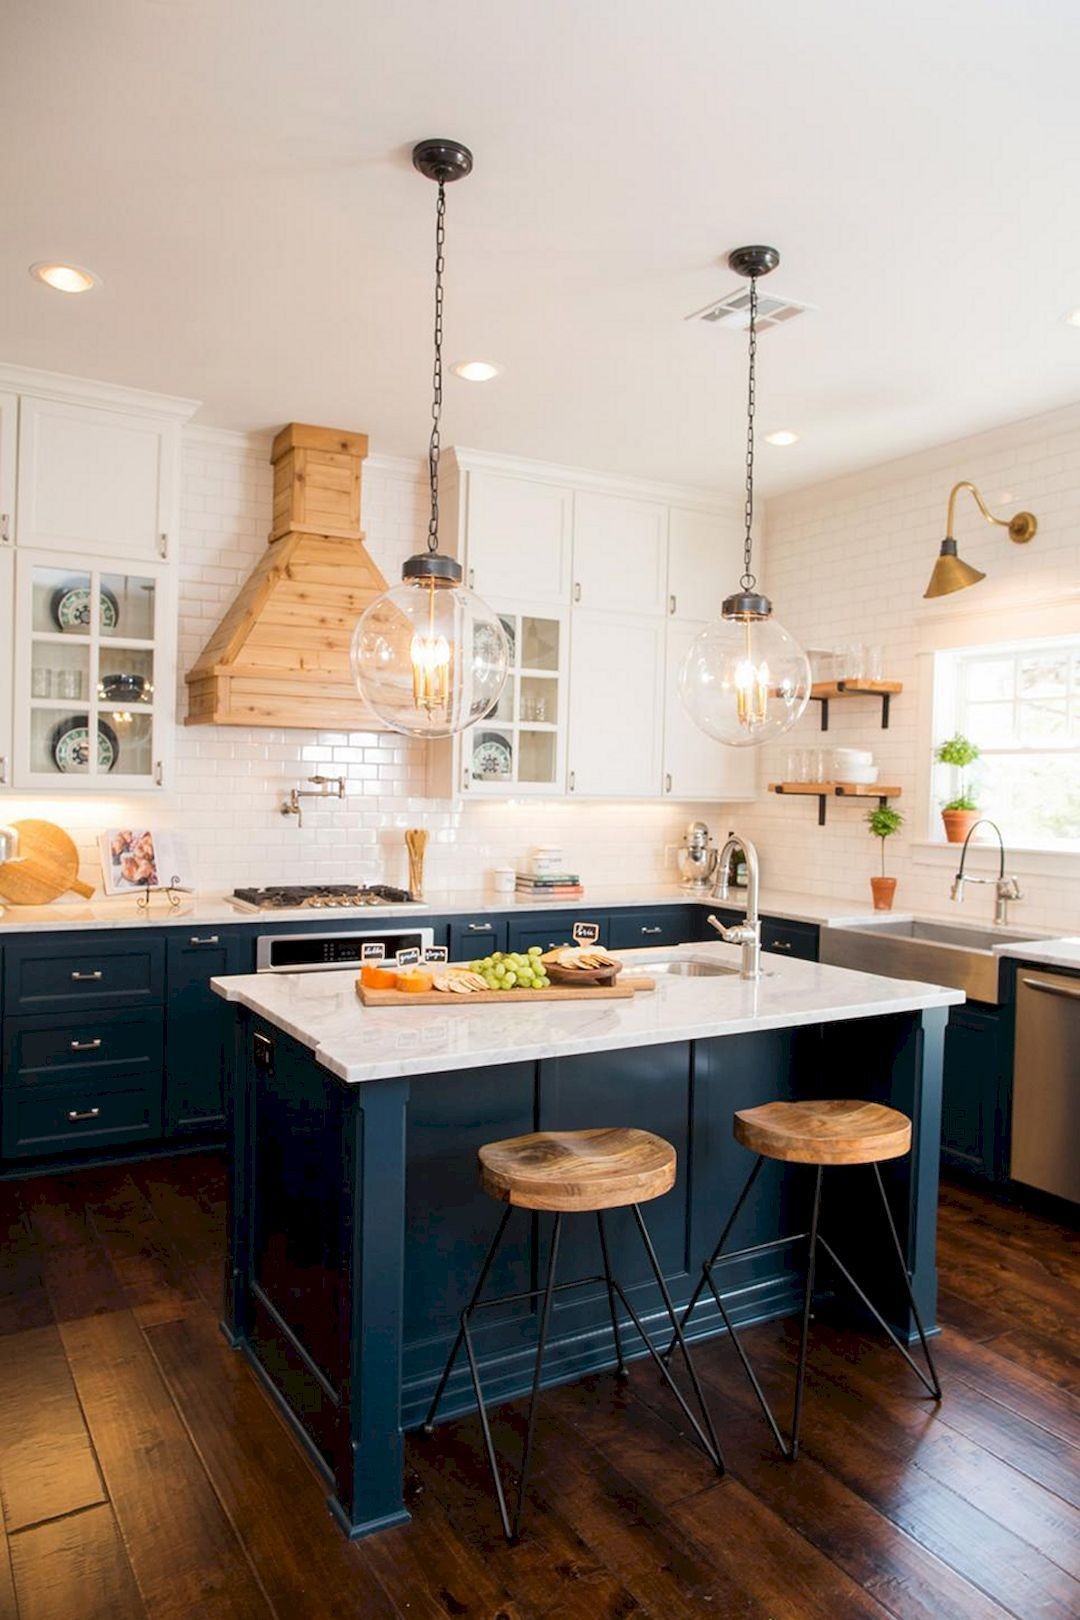 Top kitchen design inspirations from joanna gaines pinterest